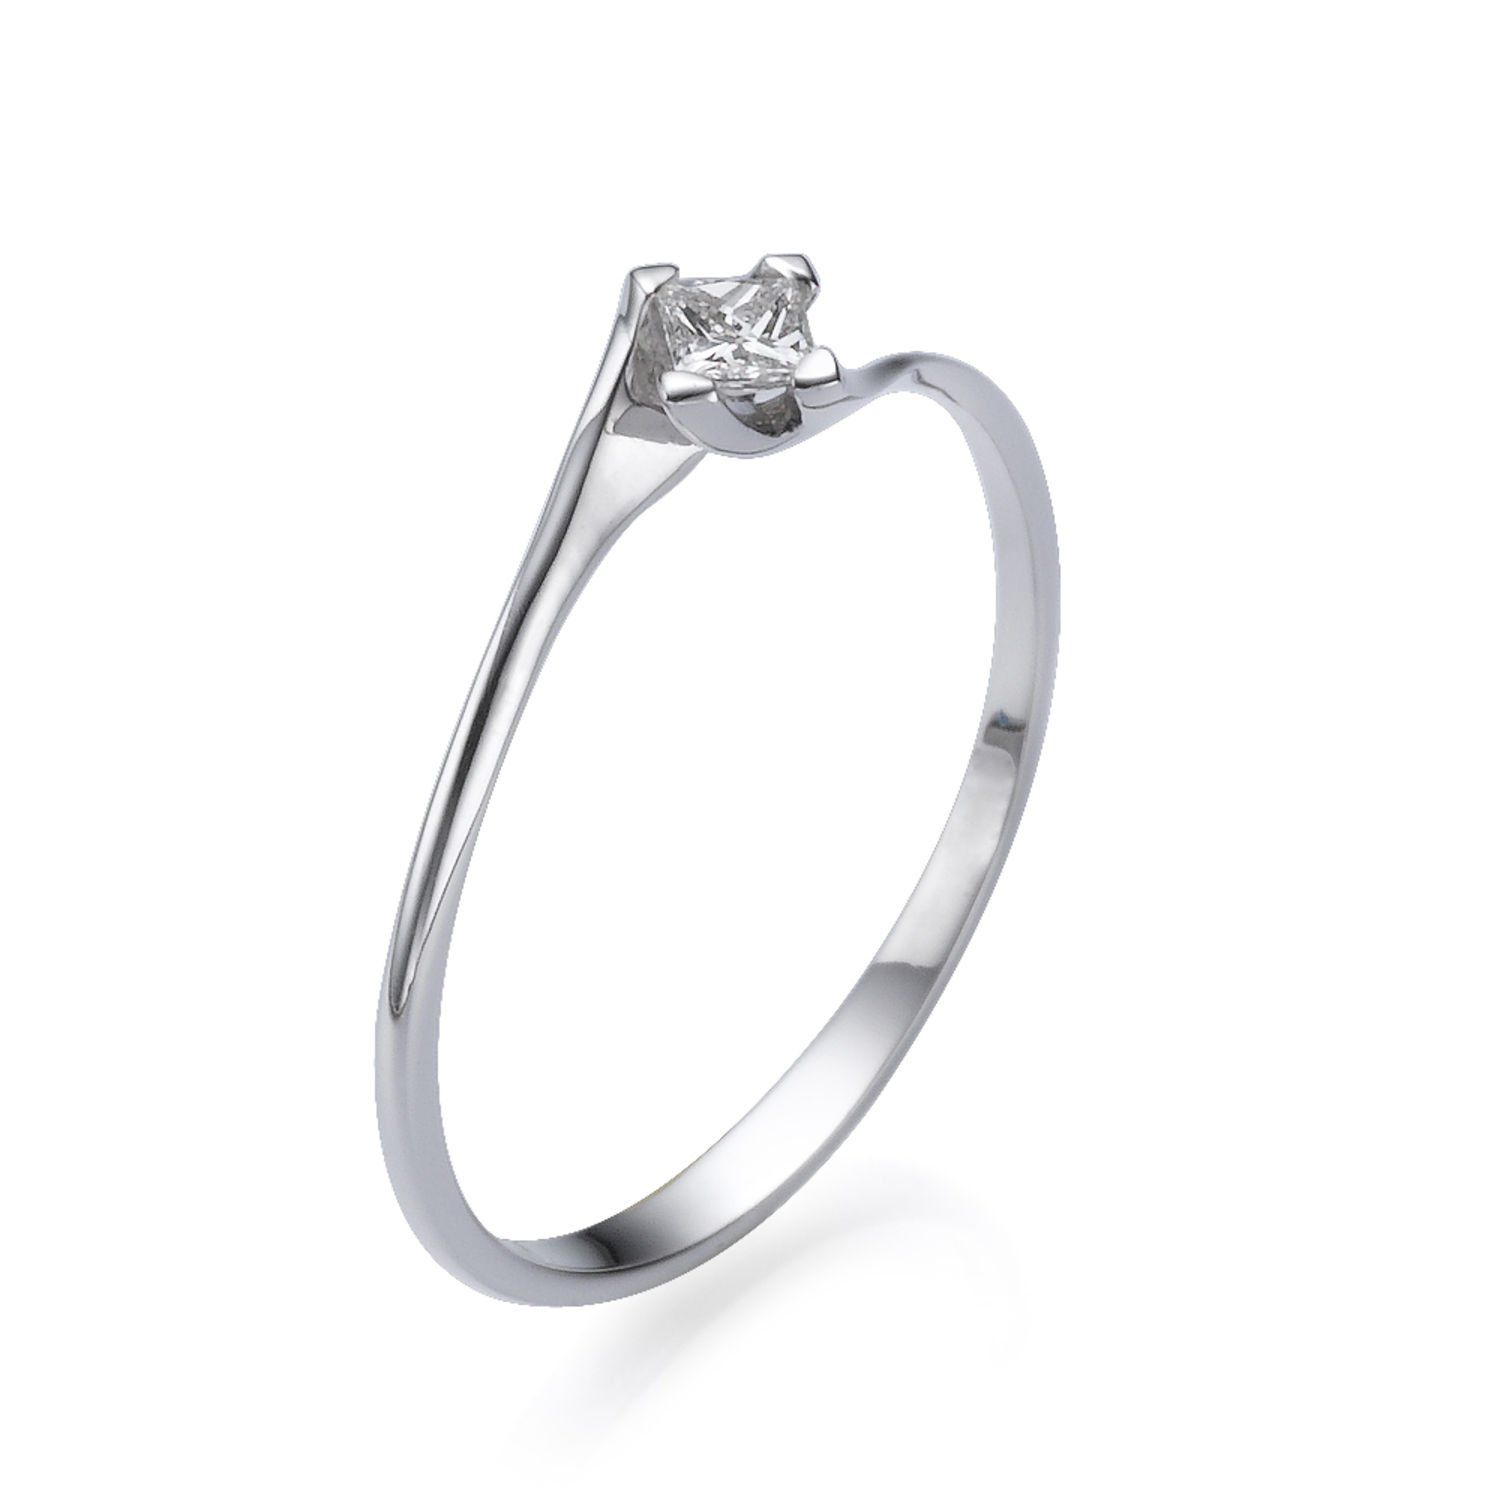 Princess Cut Solitaire Diamond Engagement Ring 14K White Gold